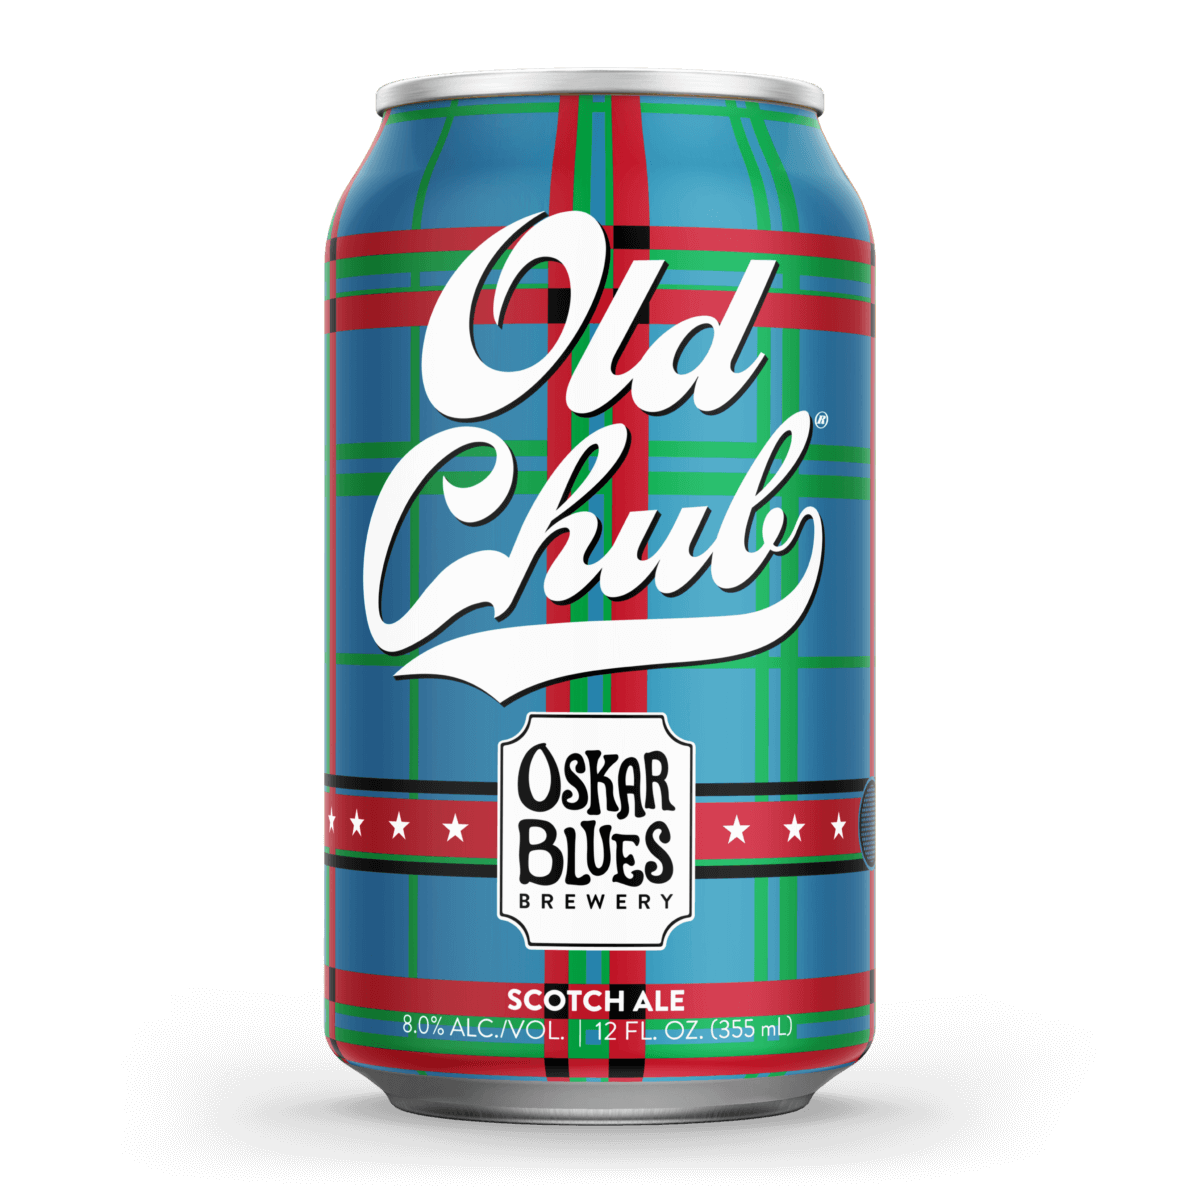 Oskar Blues OldChubb ScotchAle 355ml Can